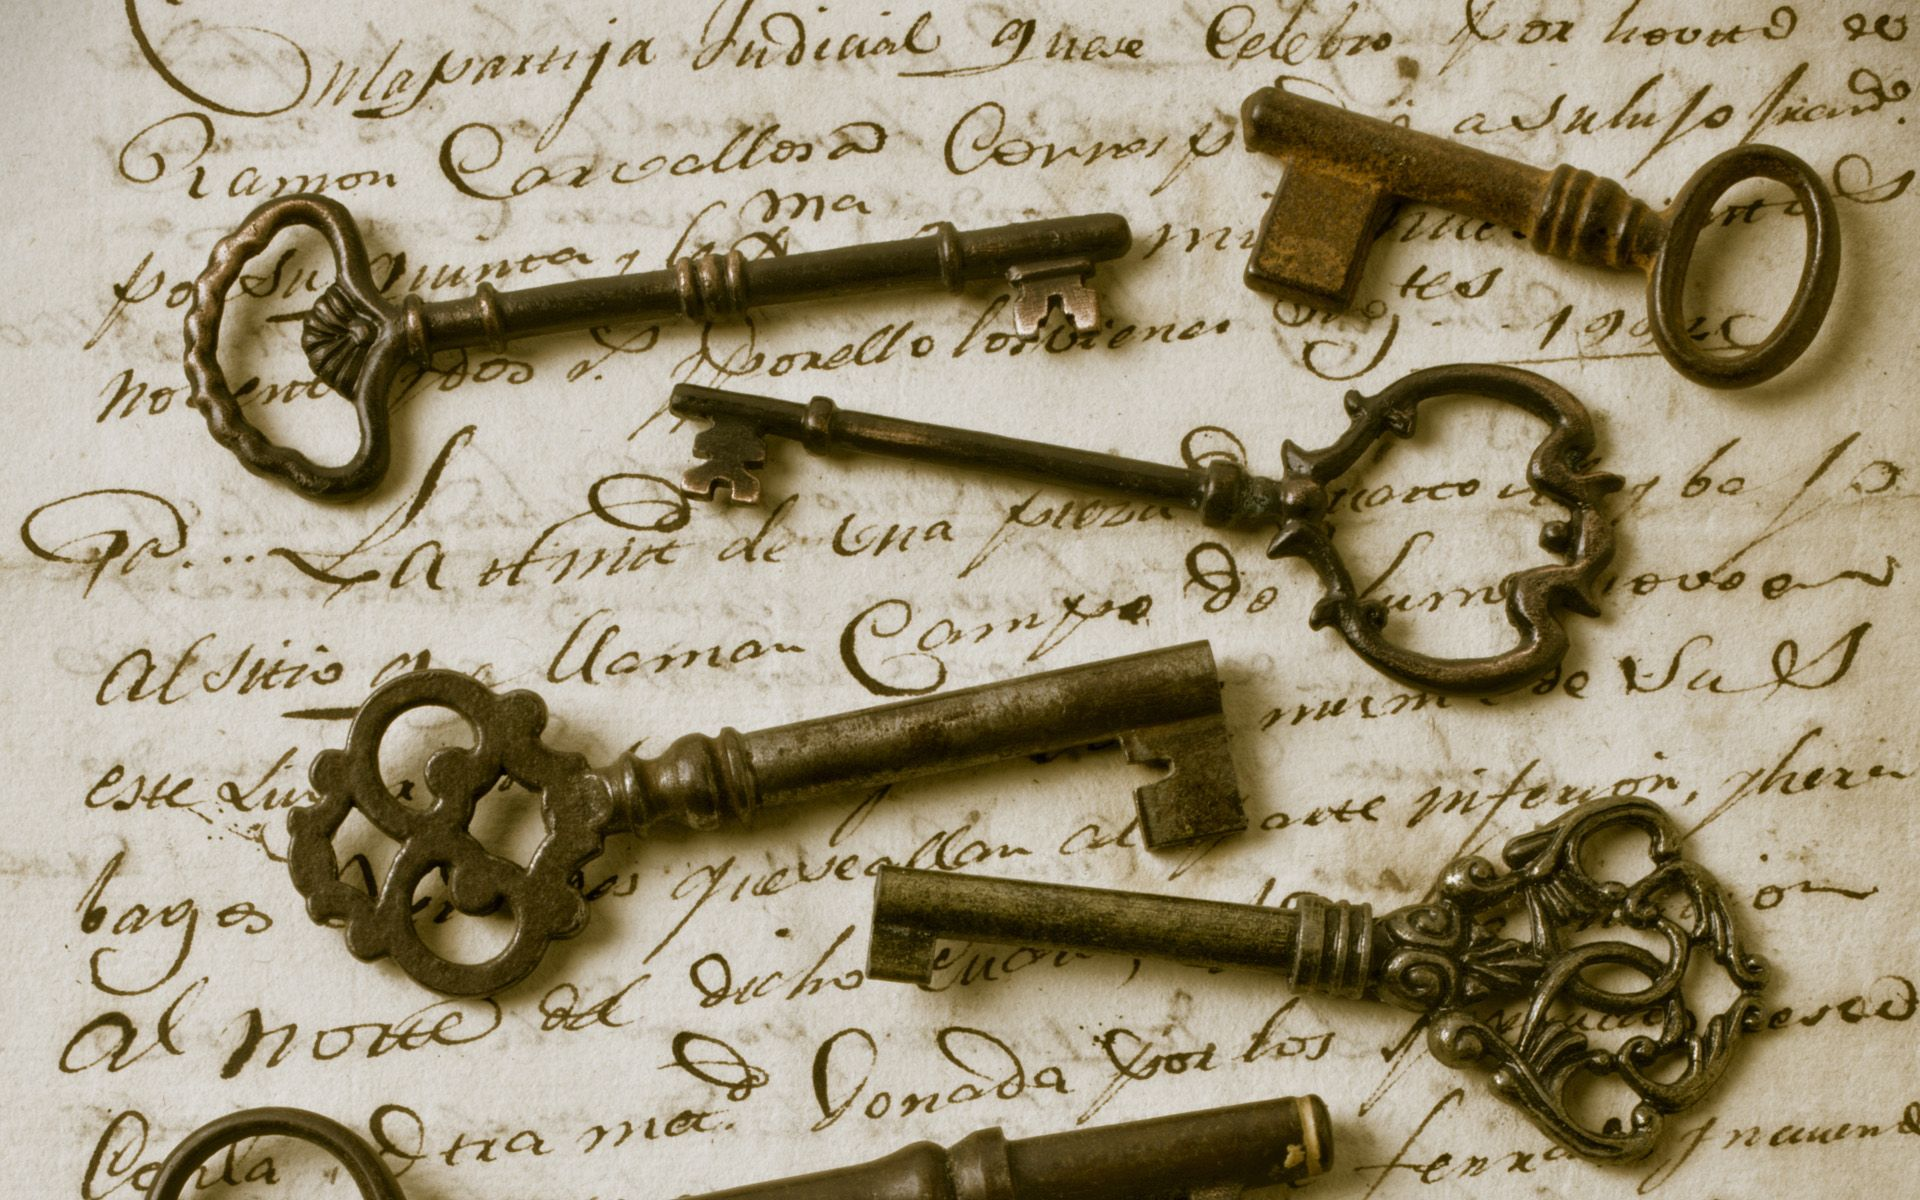 ws_Old_Keys_1920x1200